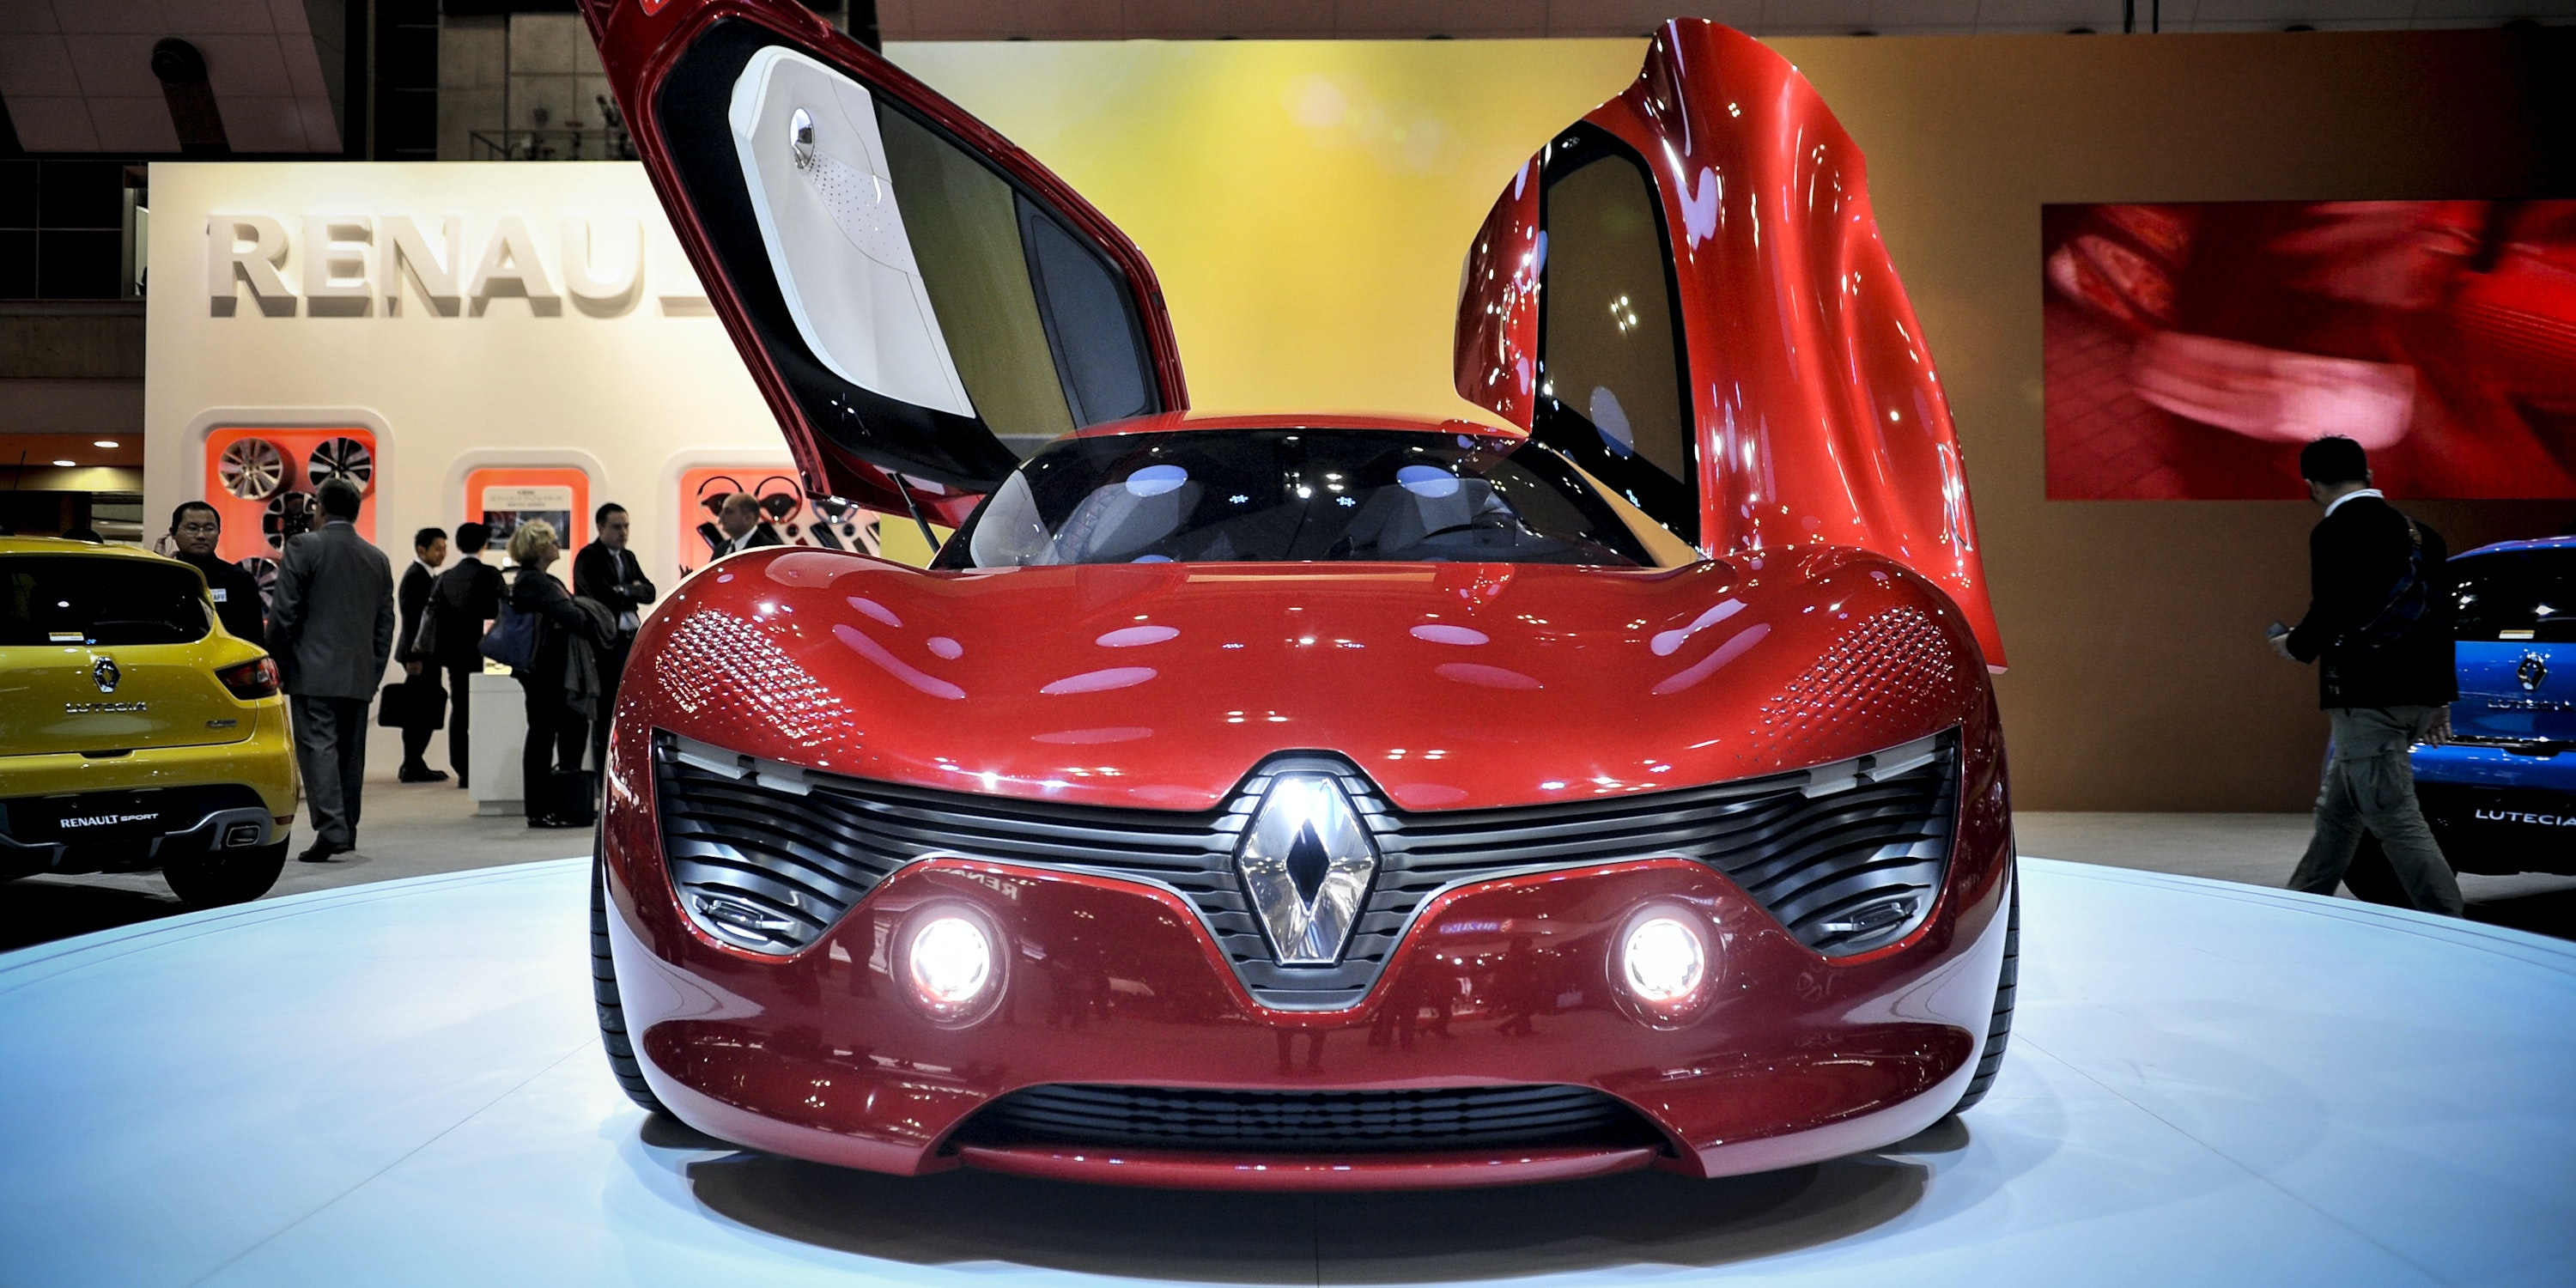 Renault Engineers: A.I. Future Means Cars Self-Drive to Repair Shop